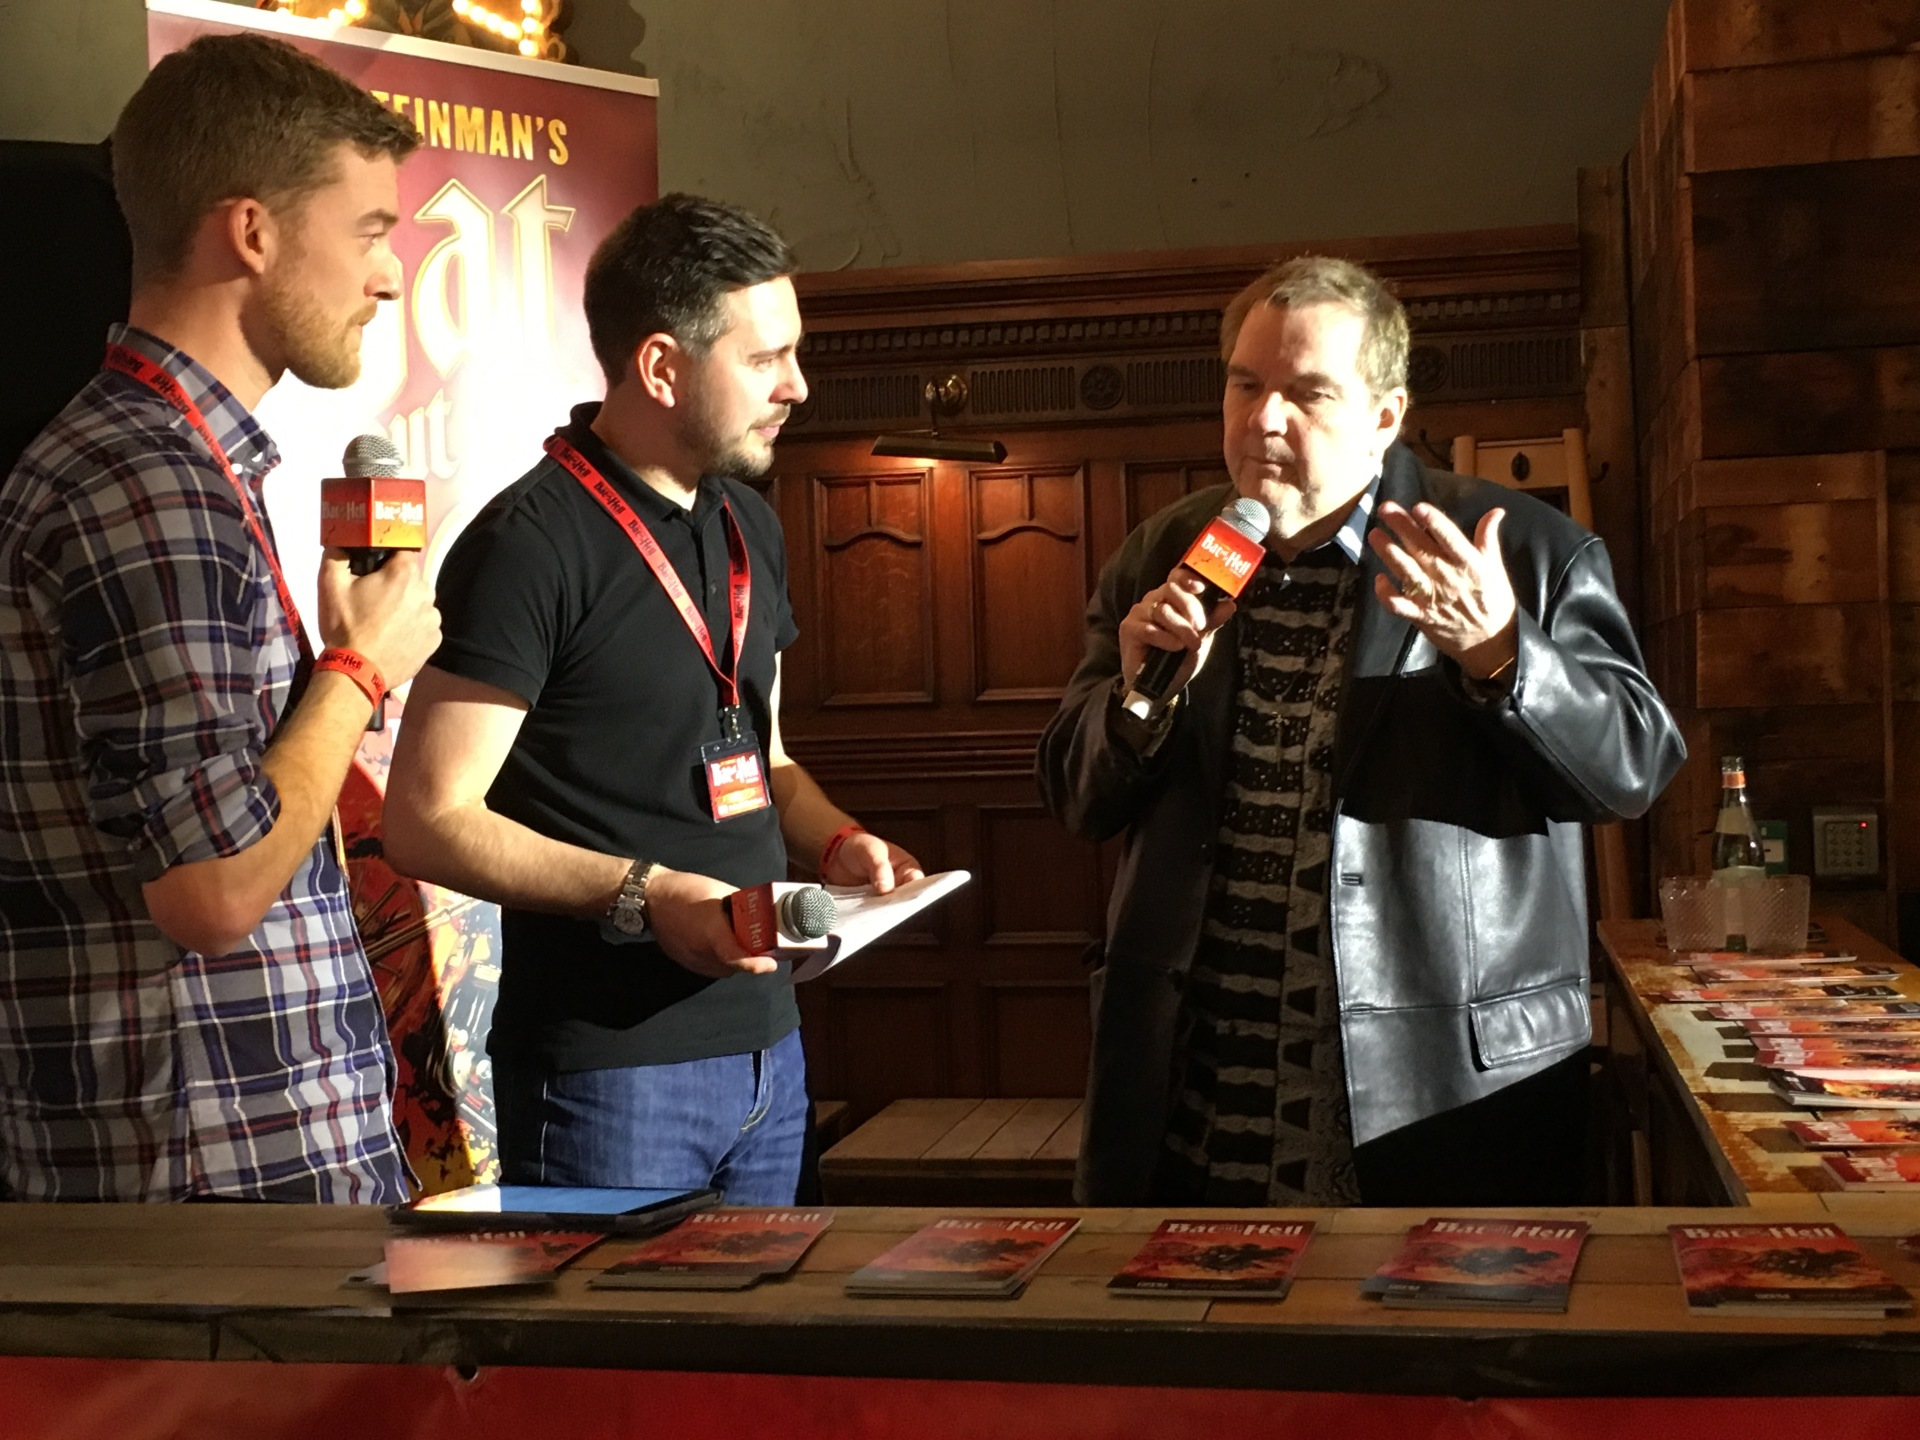 Hosting the launch of Meatloaf's new musical Bat Out of Hell